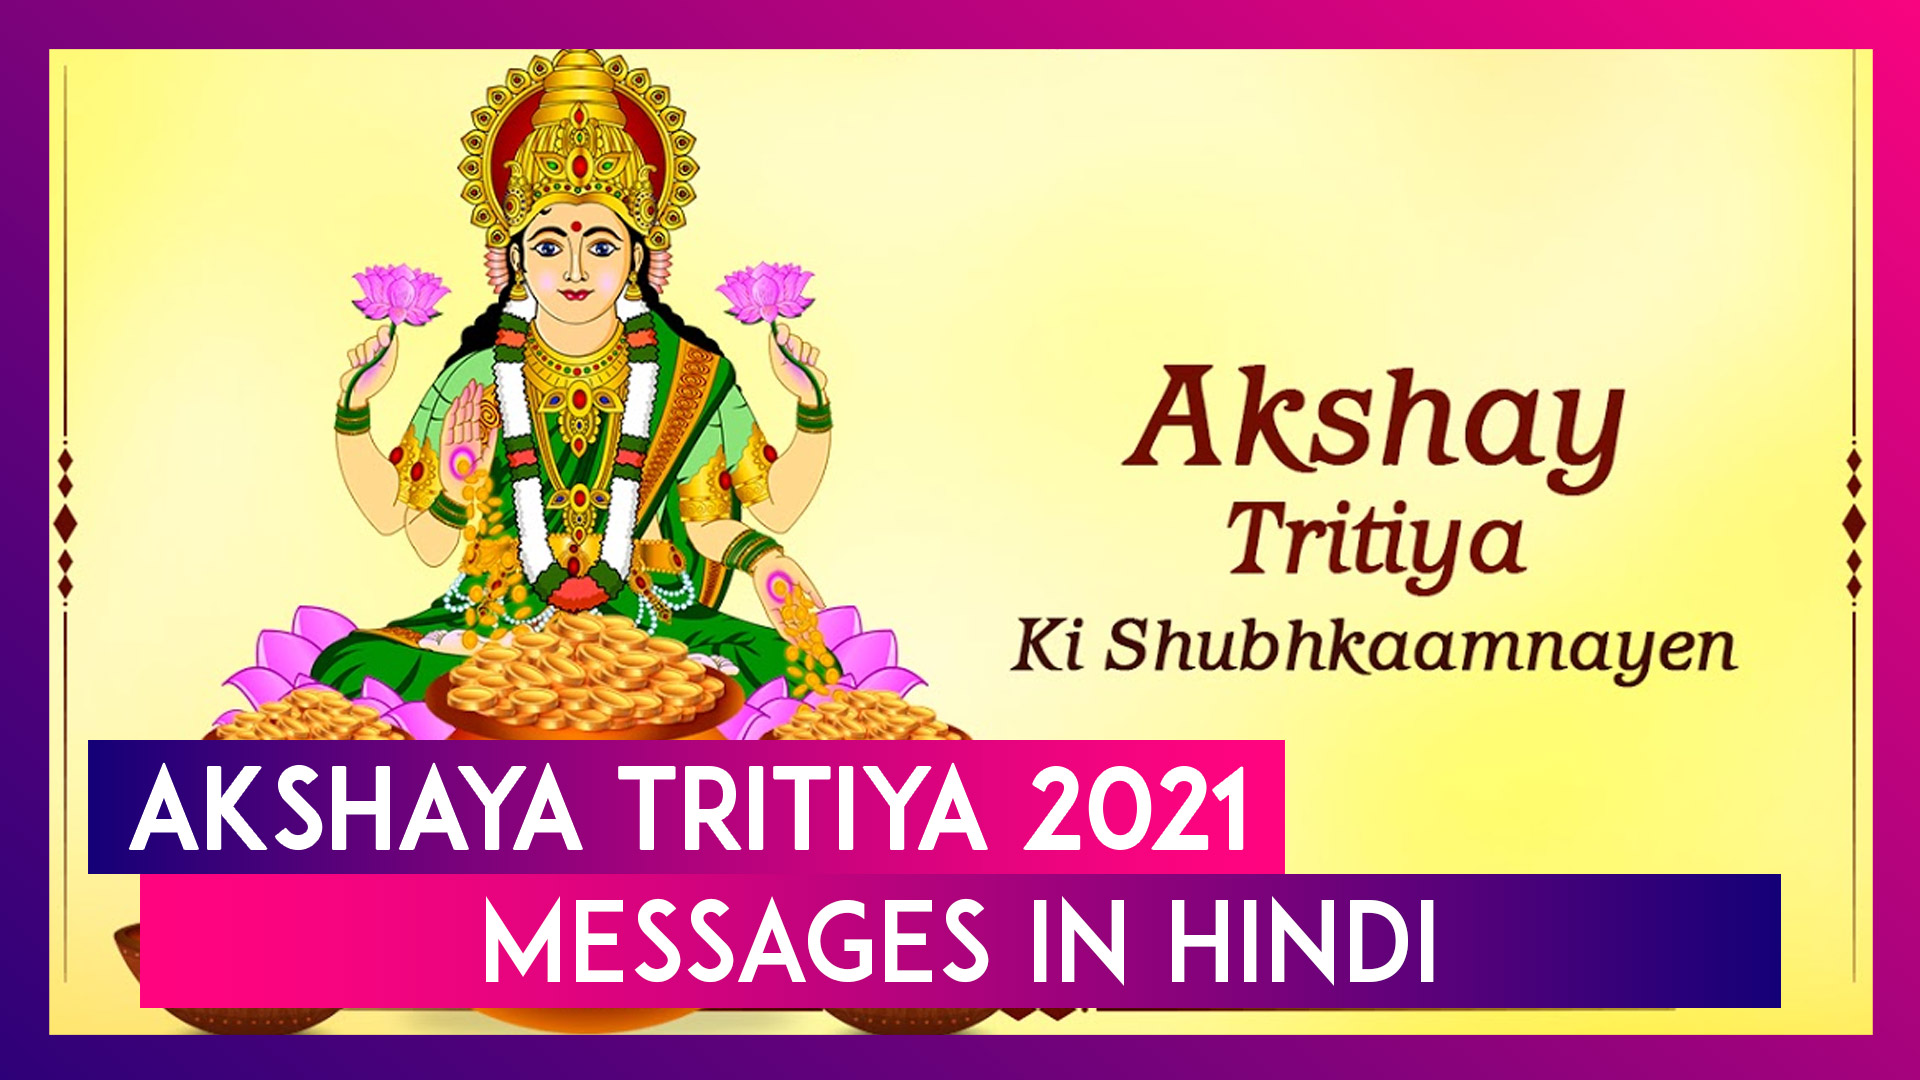 Akshaya Tritiya 2021 Messages in Hindi: Send 'Akha Teej Ki Shubhkamnaye' Greetings to Your Family